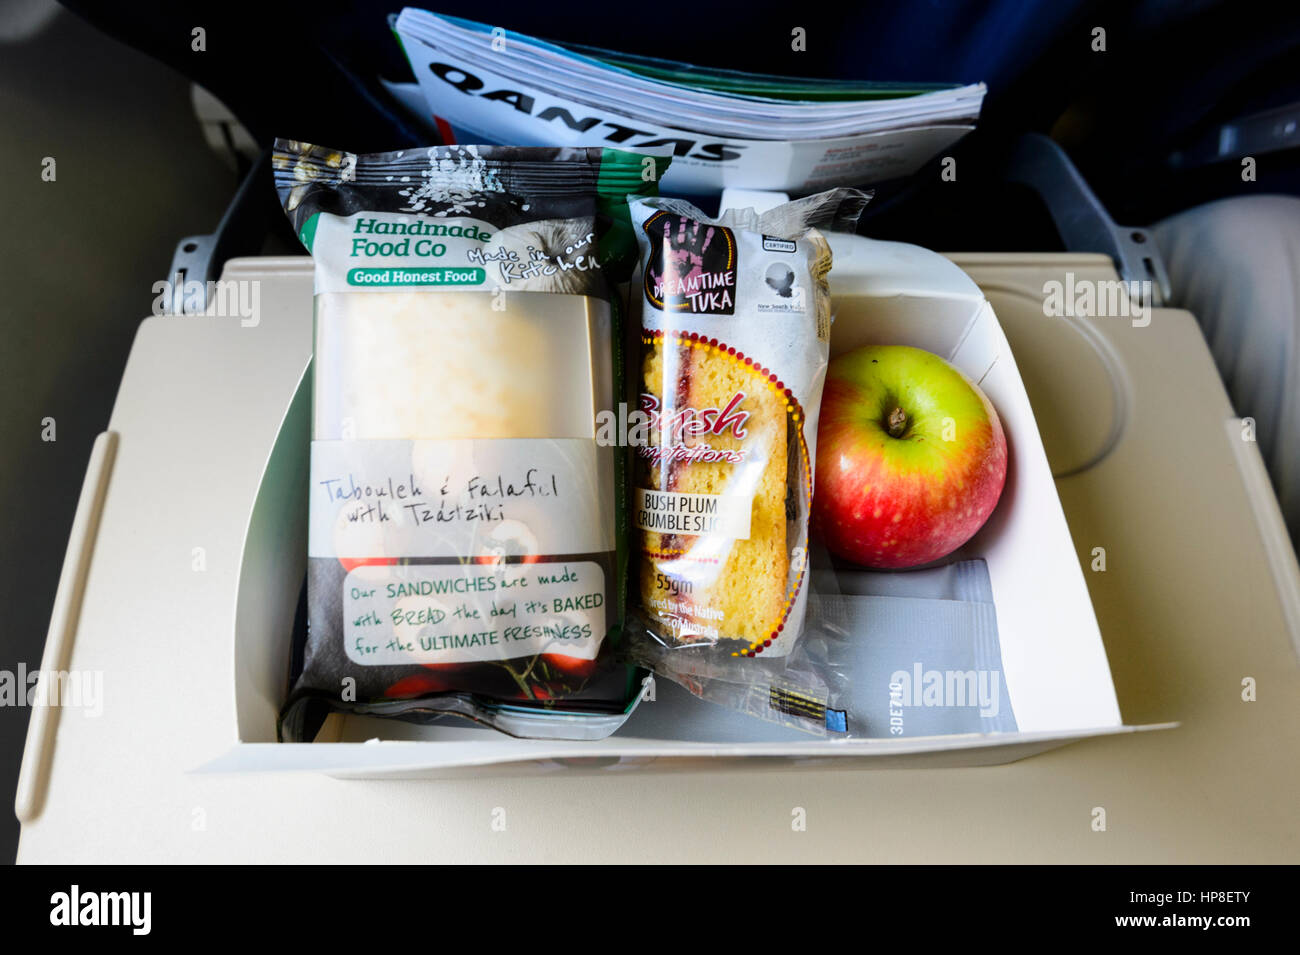 Lunch box on passenger's table on board a QantasLink flight, New South Wales, Australia - Stock Image